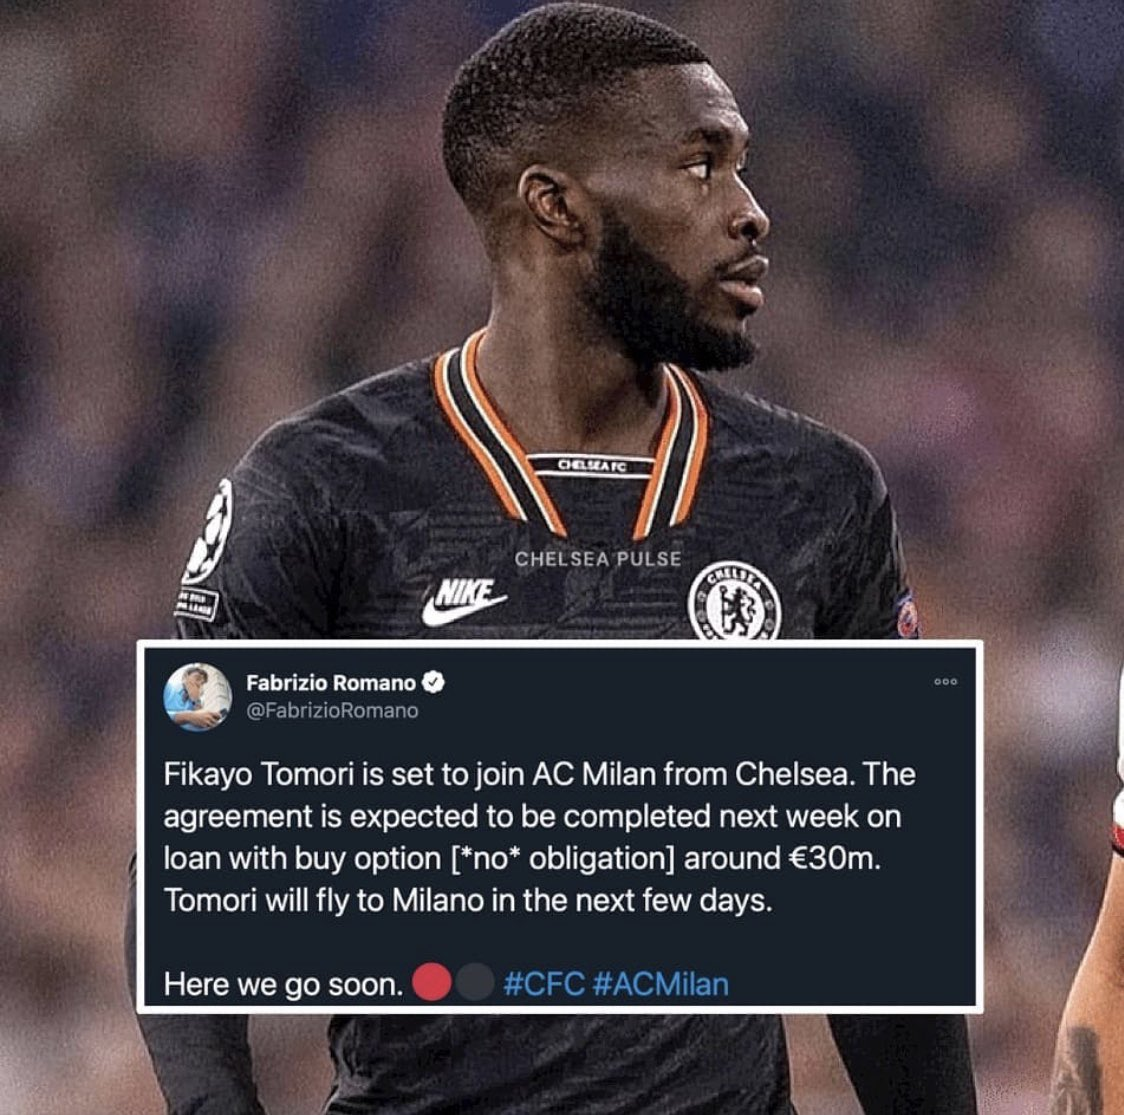 Fikayo Tomori set your join @acmilan on loan with a buy out option reported by @FabrizioRomano .